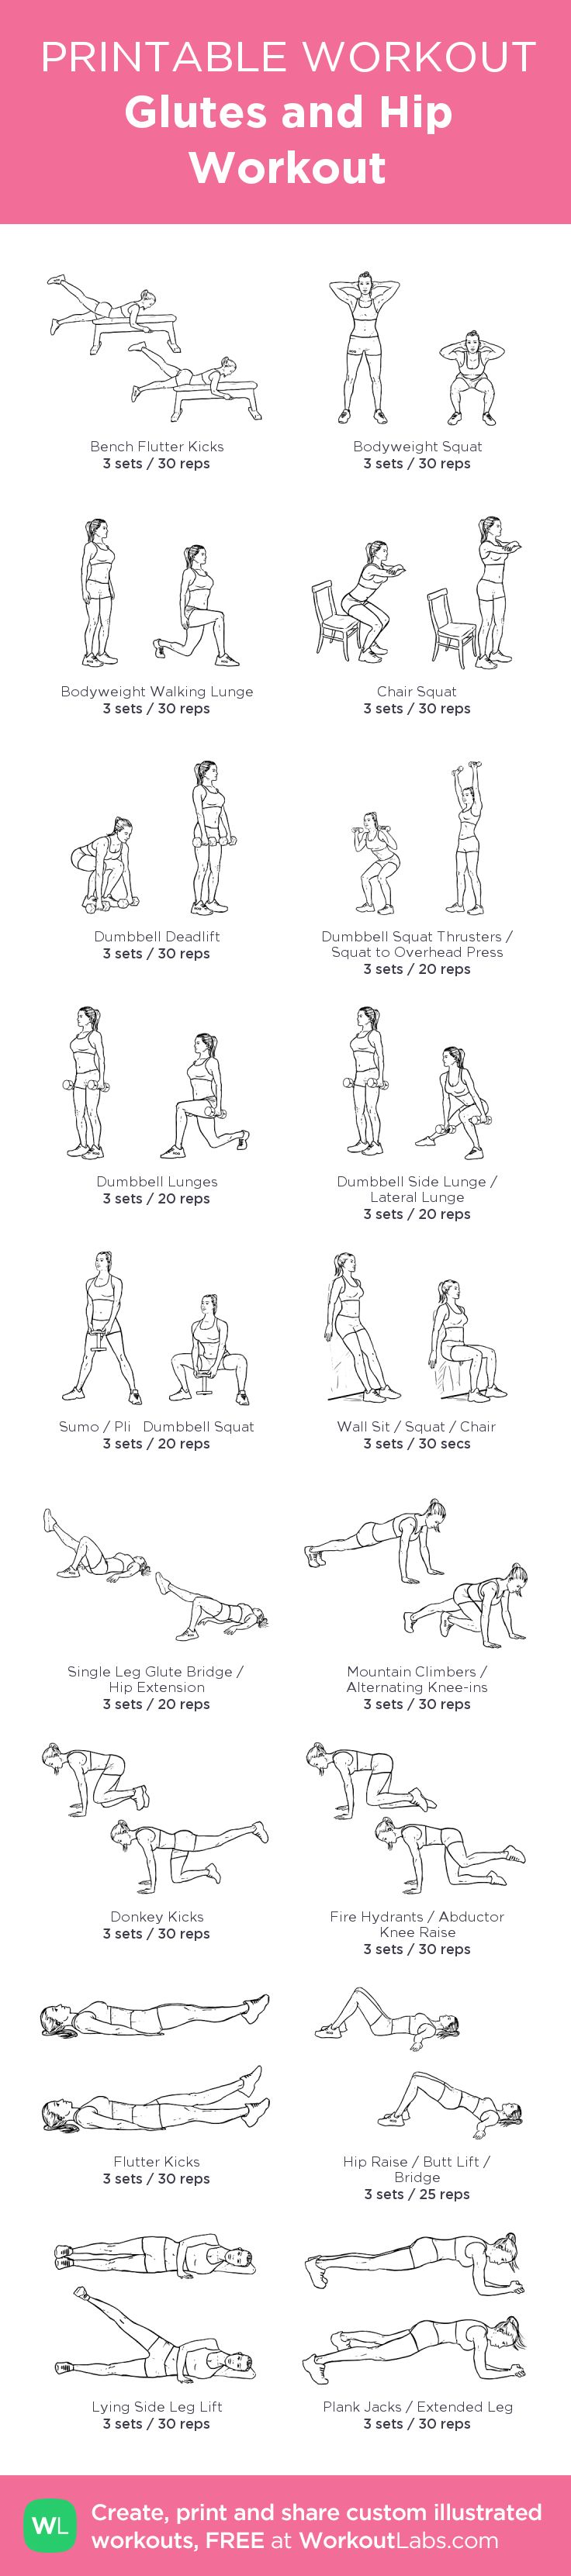 Glutes and Hip Workout:my visual workout created at WorkoutLabs.com • Click through to customize and download as a FREE PDF! #customworkout